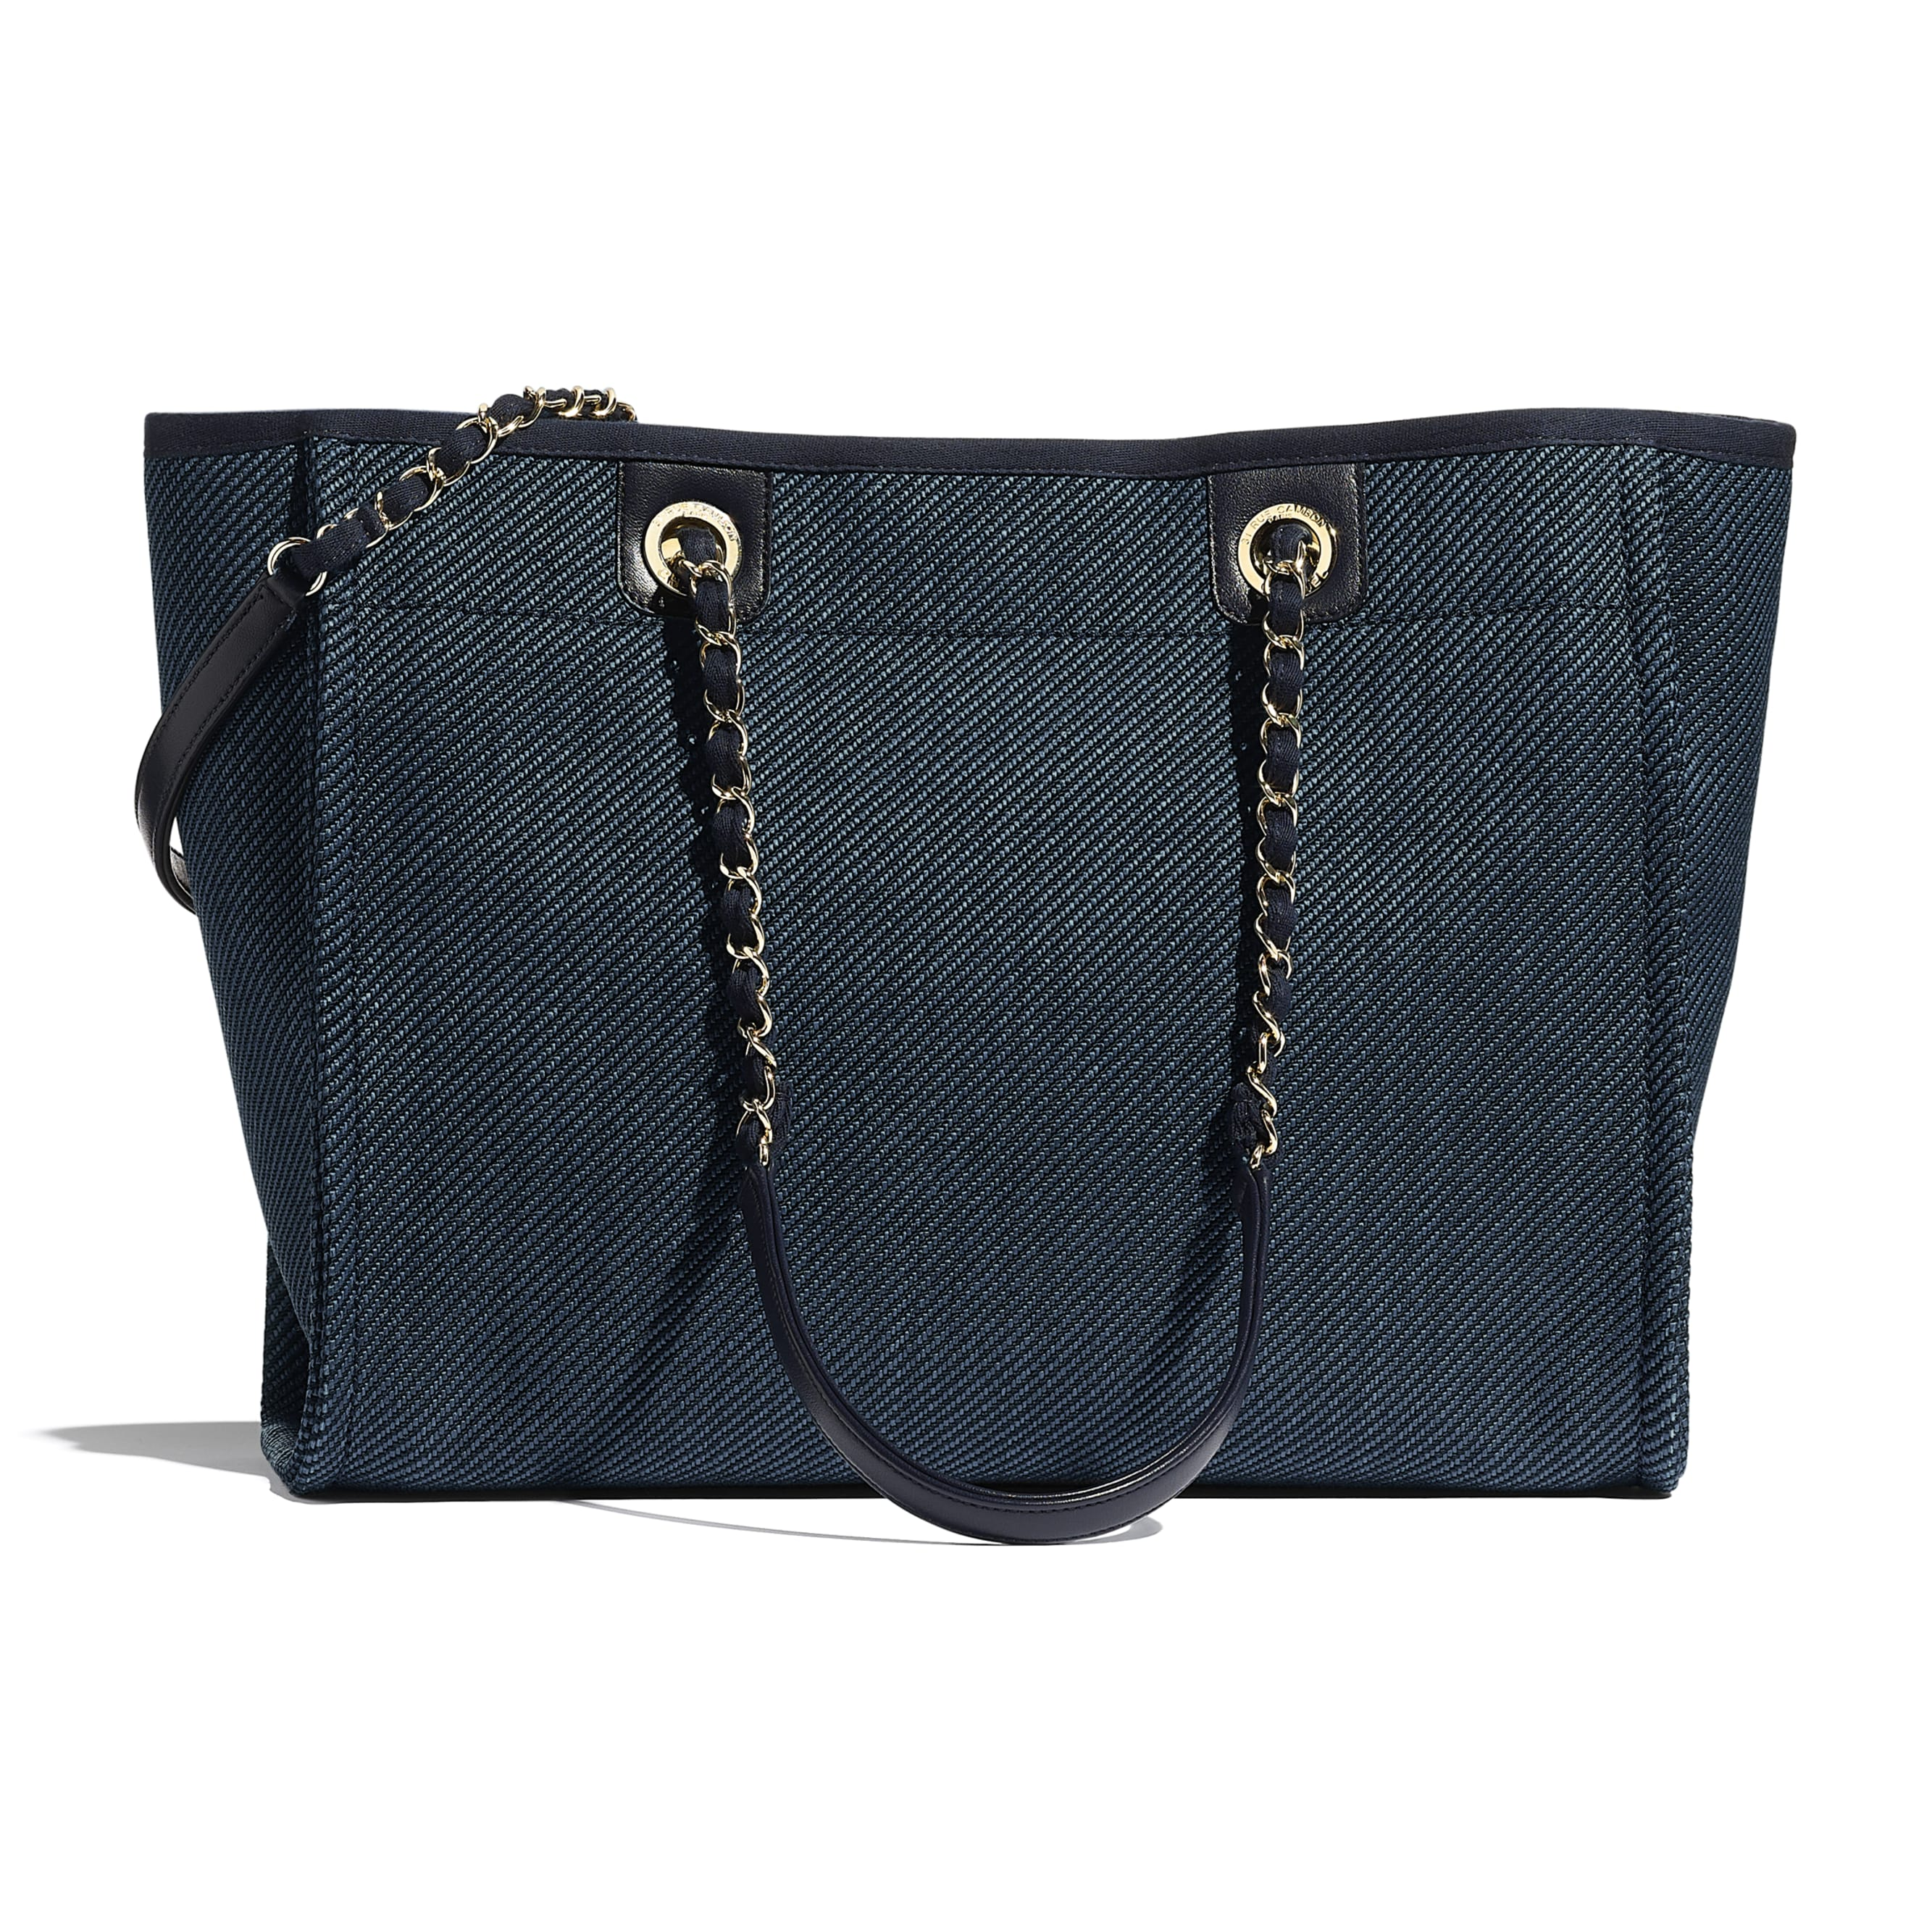 Large Tote - Navy Blue - Mixed Fibres, Calfskin & Gold-Tone Metal - CHANEL - Alternative view - see standard sized version